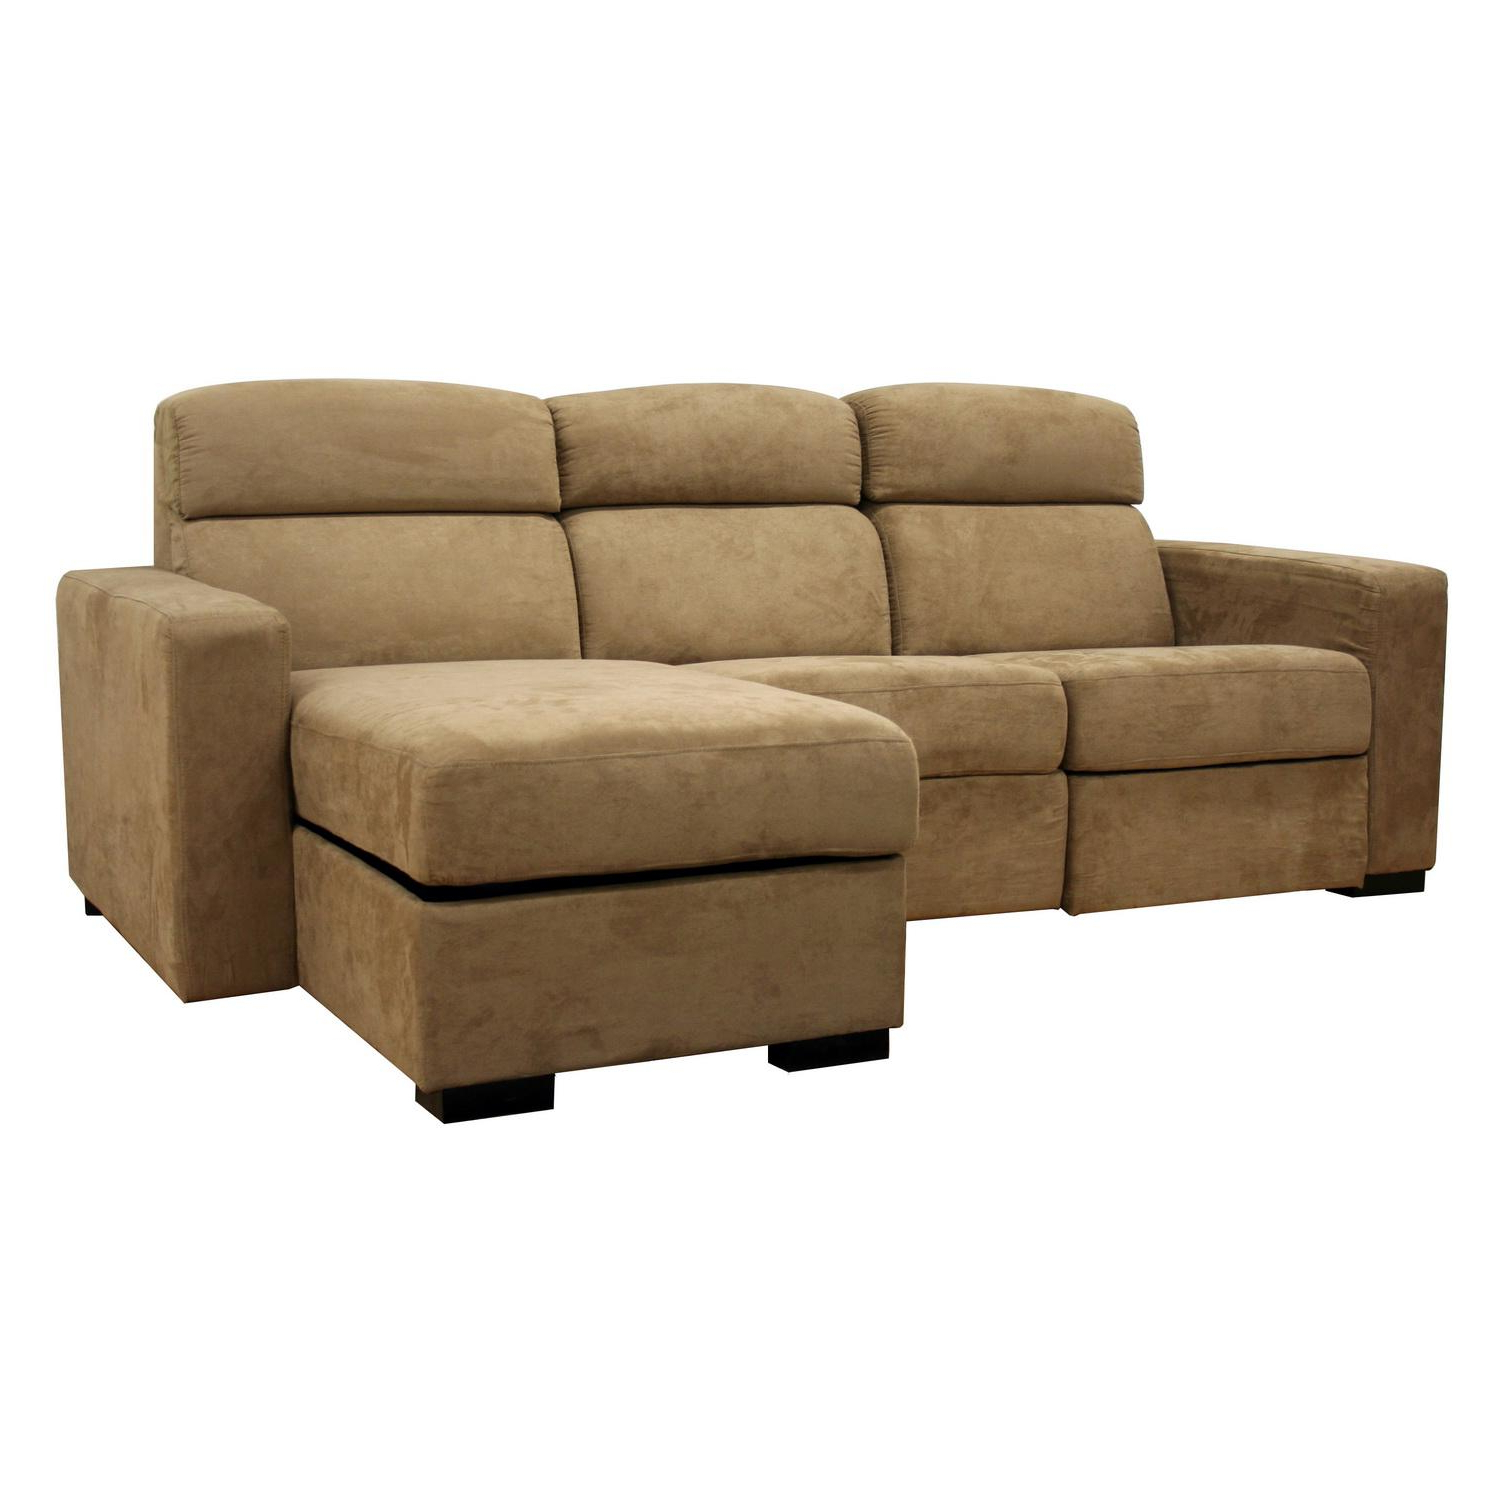 Holcomb Tan Microfiber Storage Chaise And Reclining In Most Popular Copenhagen Reclining Sectional Sofas With Right Storage Chaise (View 9 of 25)